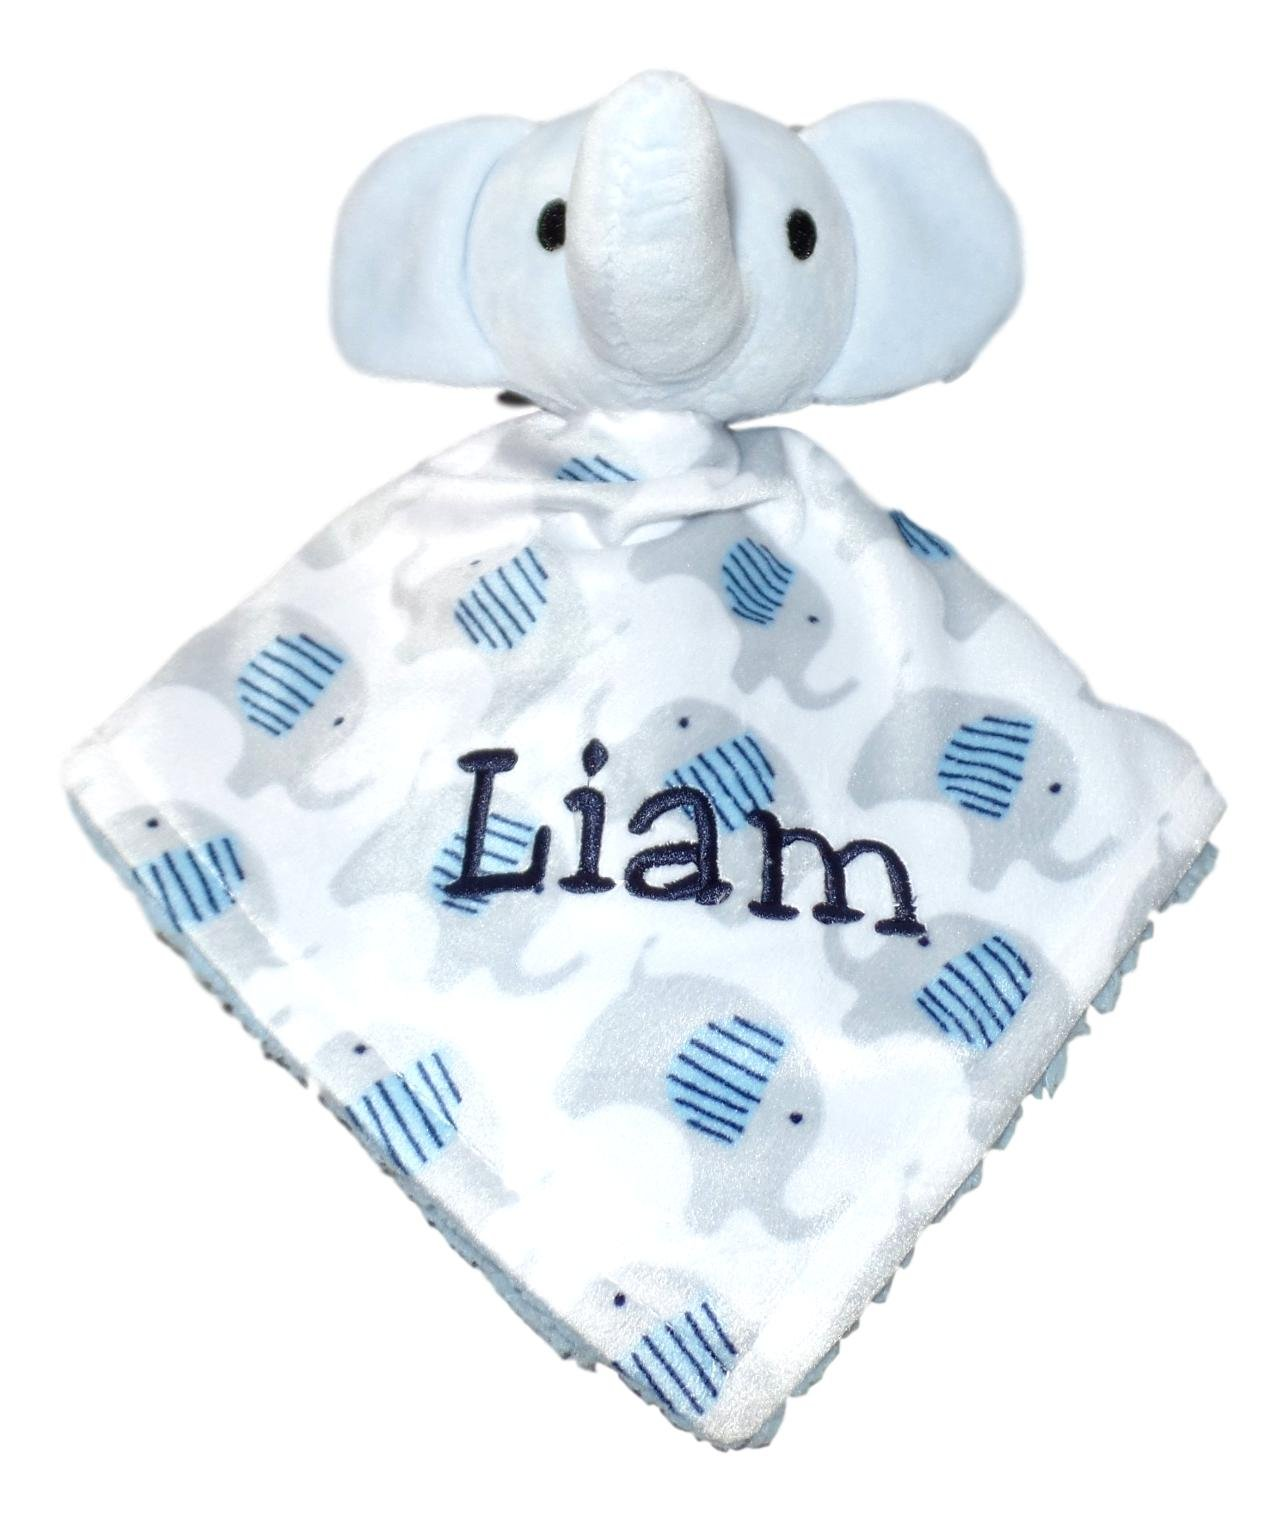 Plush Custom Embroidery Name Baby Blanket (30 x 40 inch) With Lovey Blanket - Excellent Gift Idea (Custom Embroidery Blue Elephant) by A Small Love (Image #3)